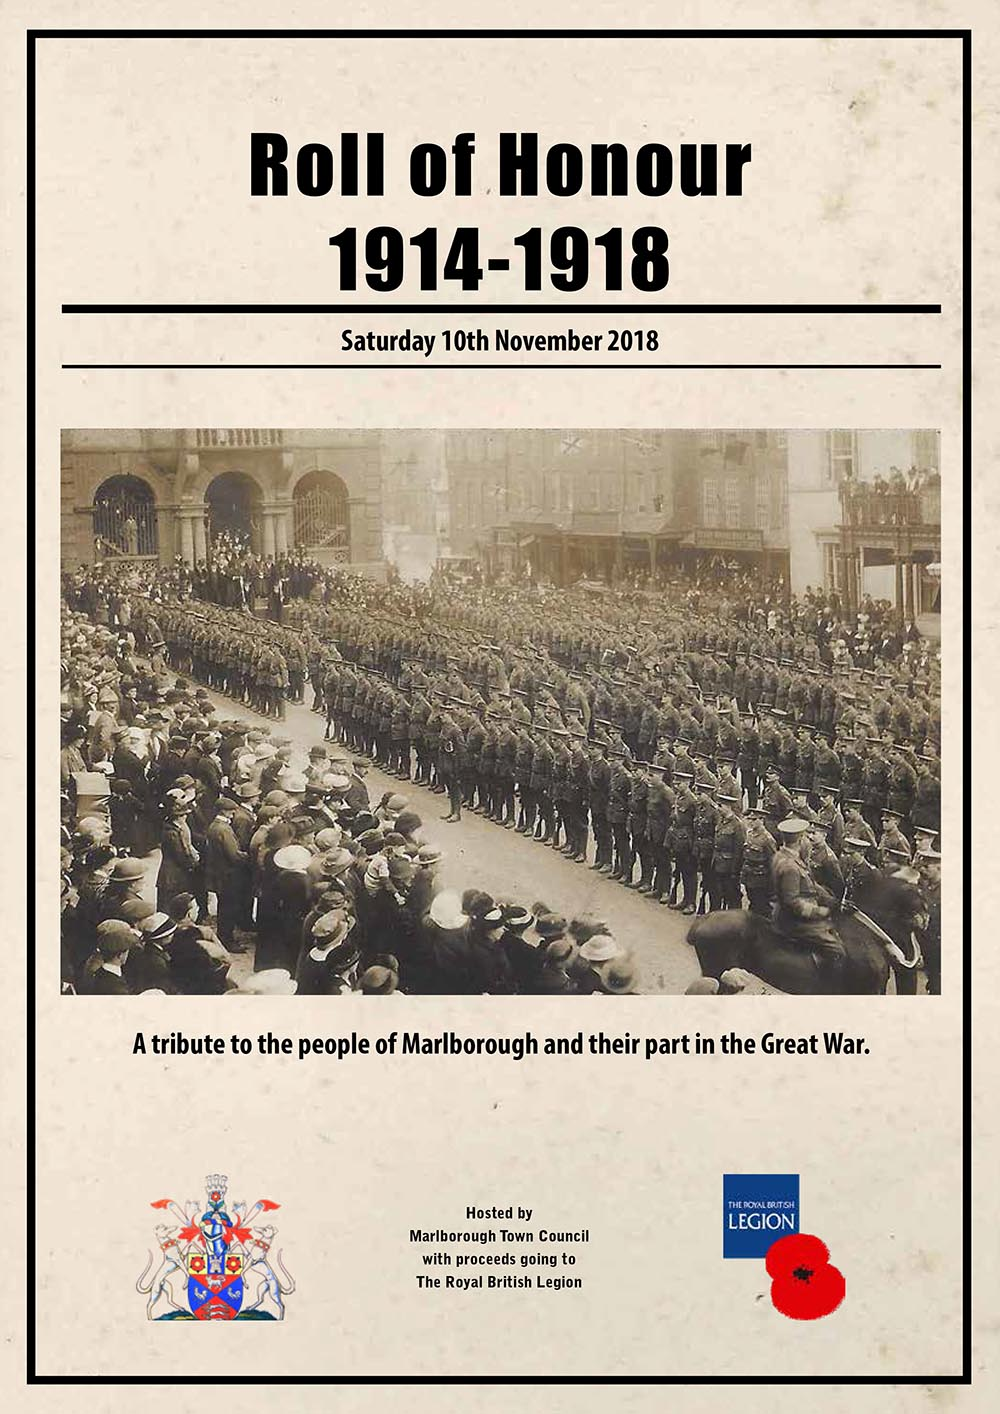 The cover of the programme for Saturday's 'Roll of Honour' to be held at the Town Hall